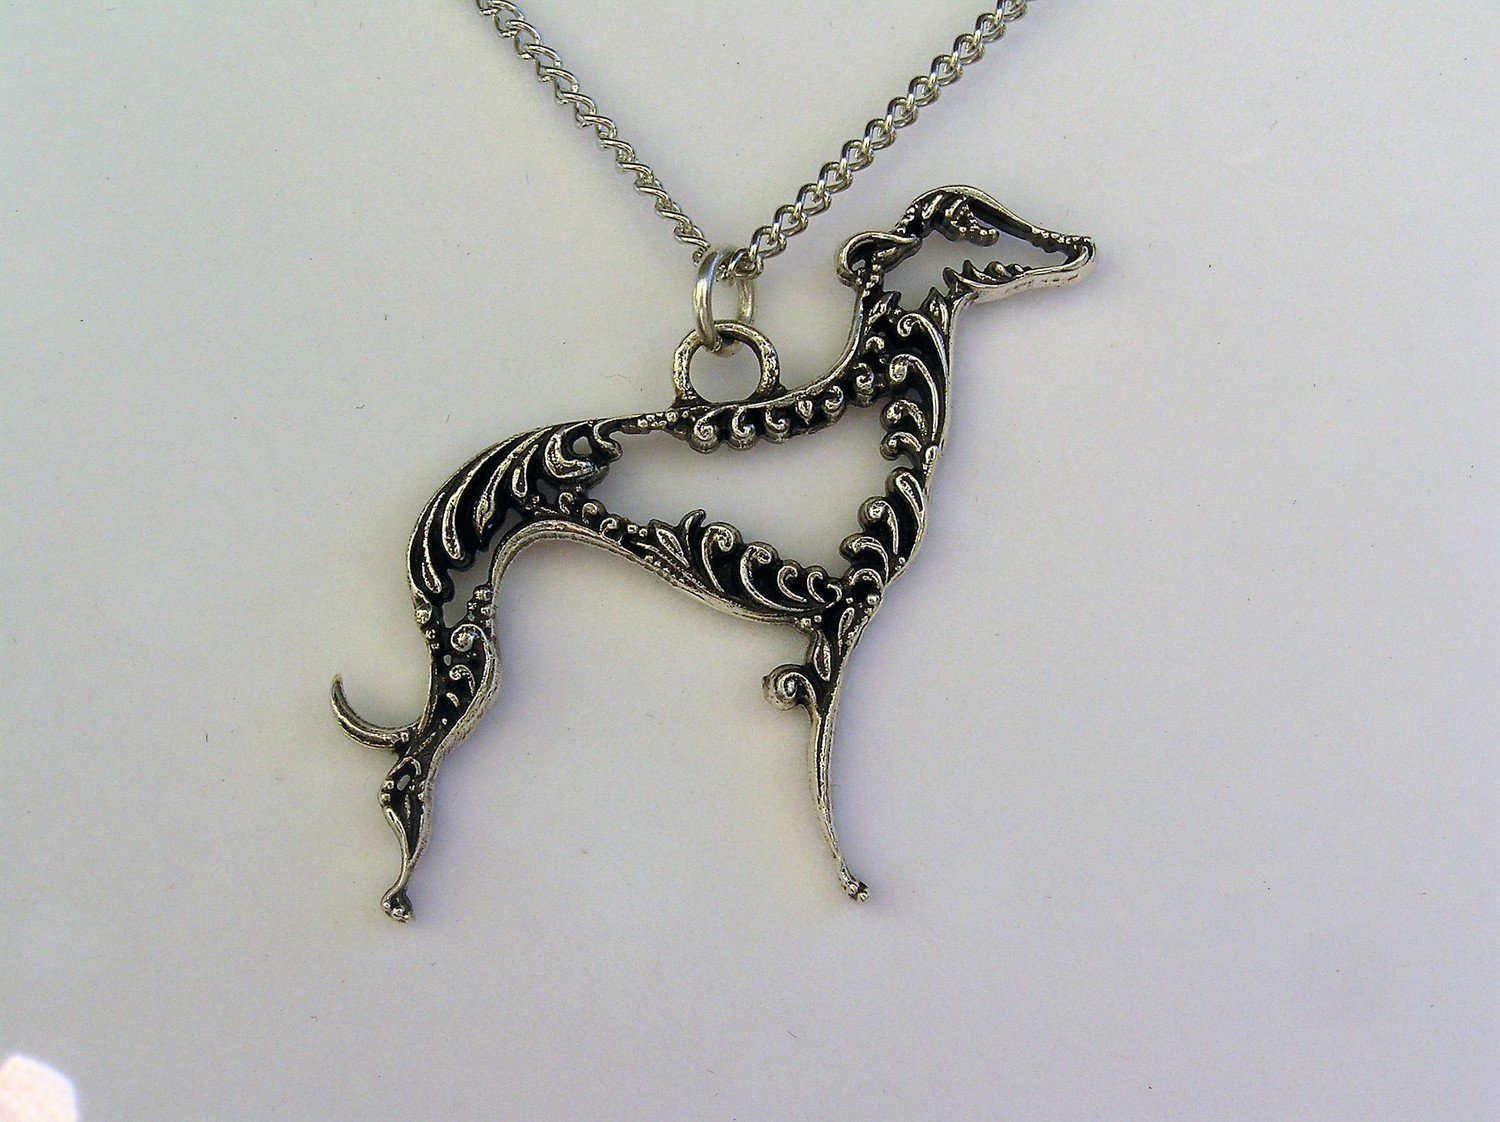 Greyhound Adoption Center USA sterling silver pendant